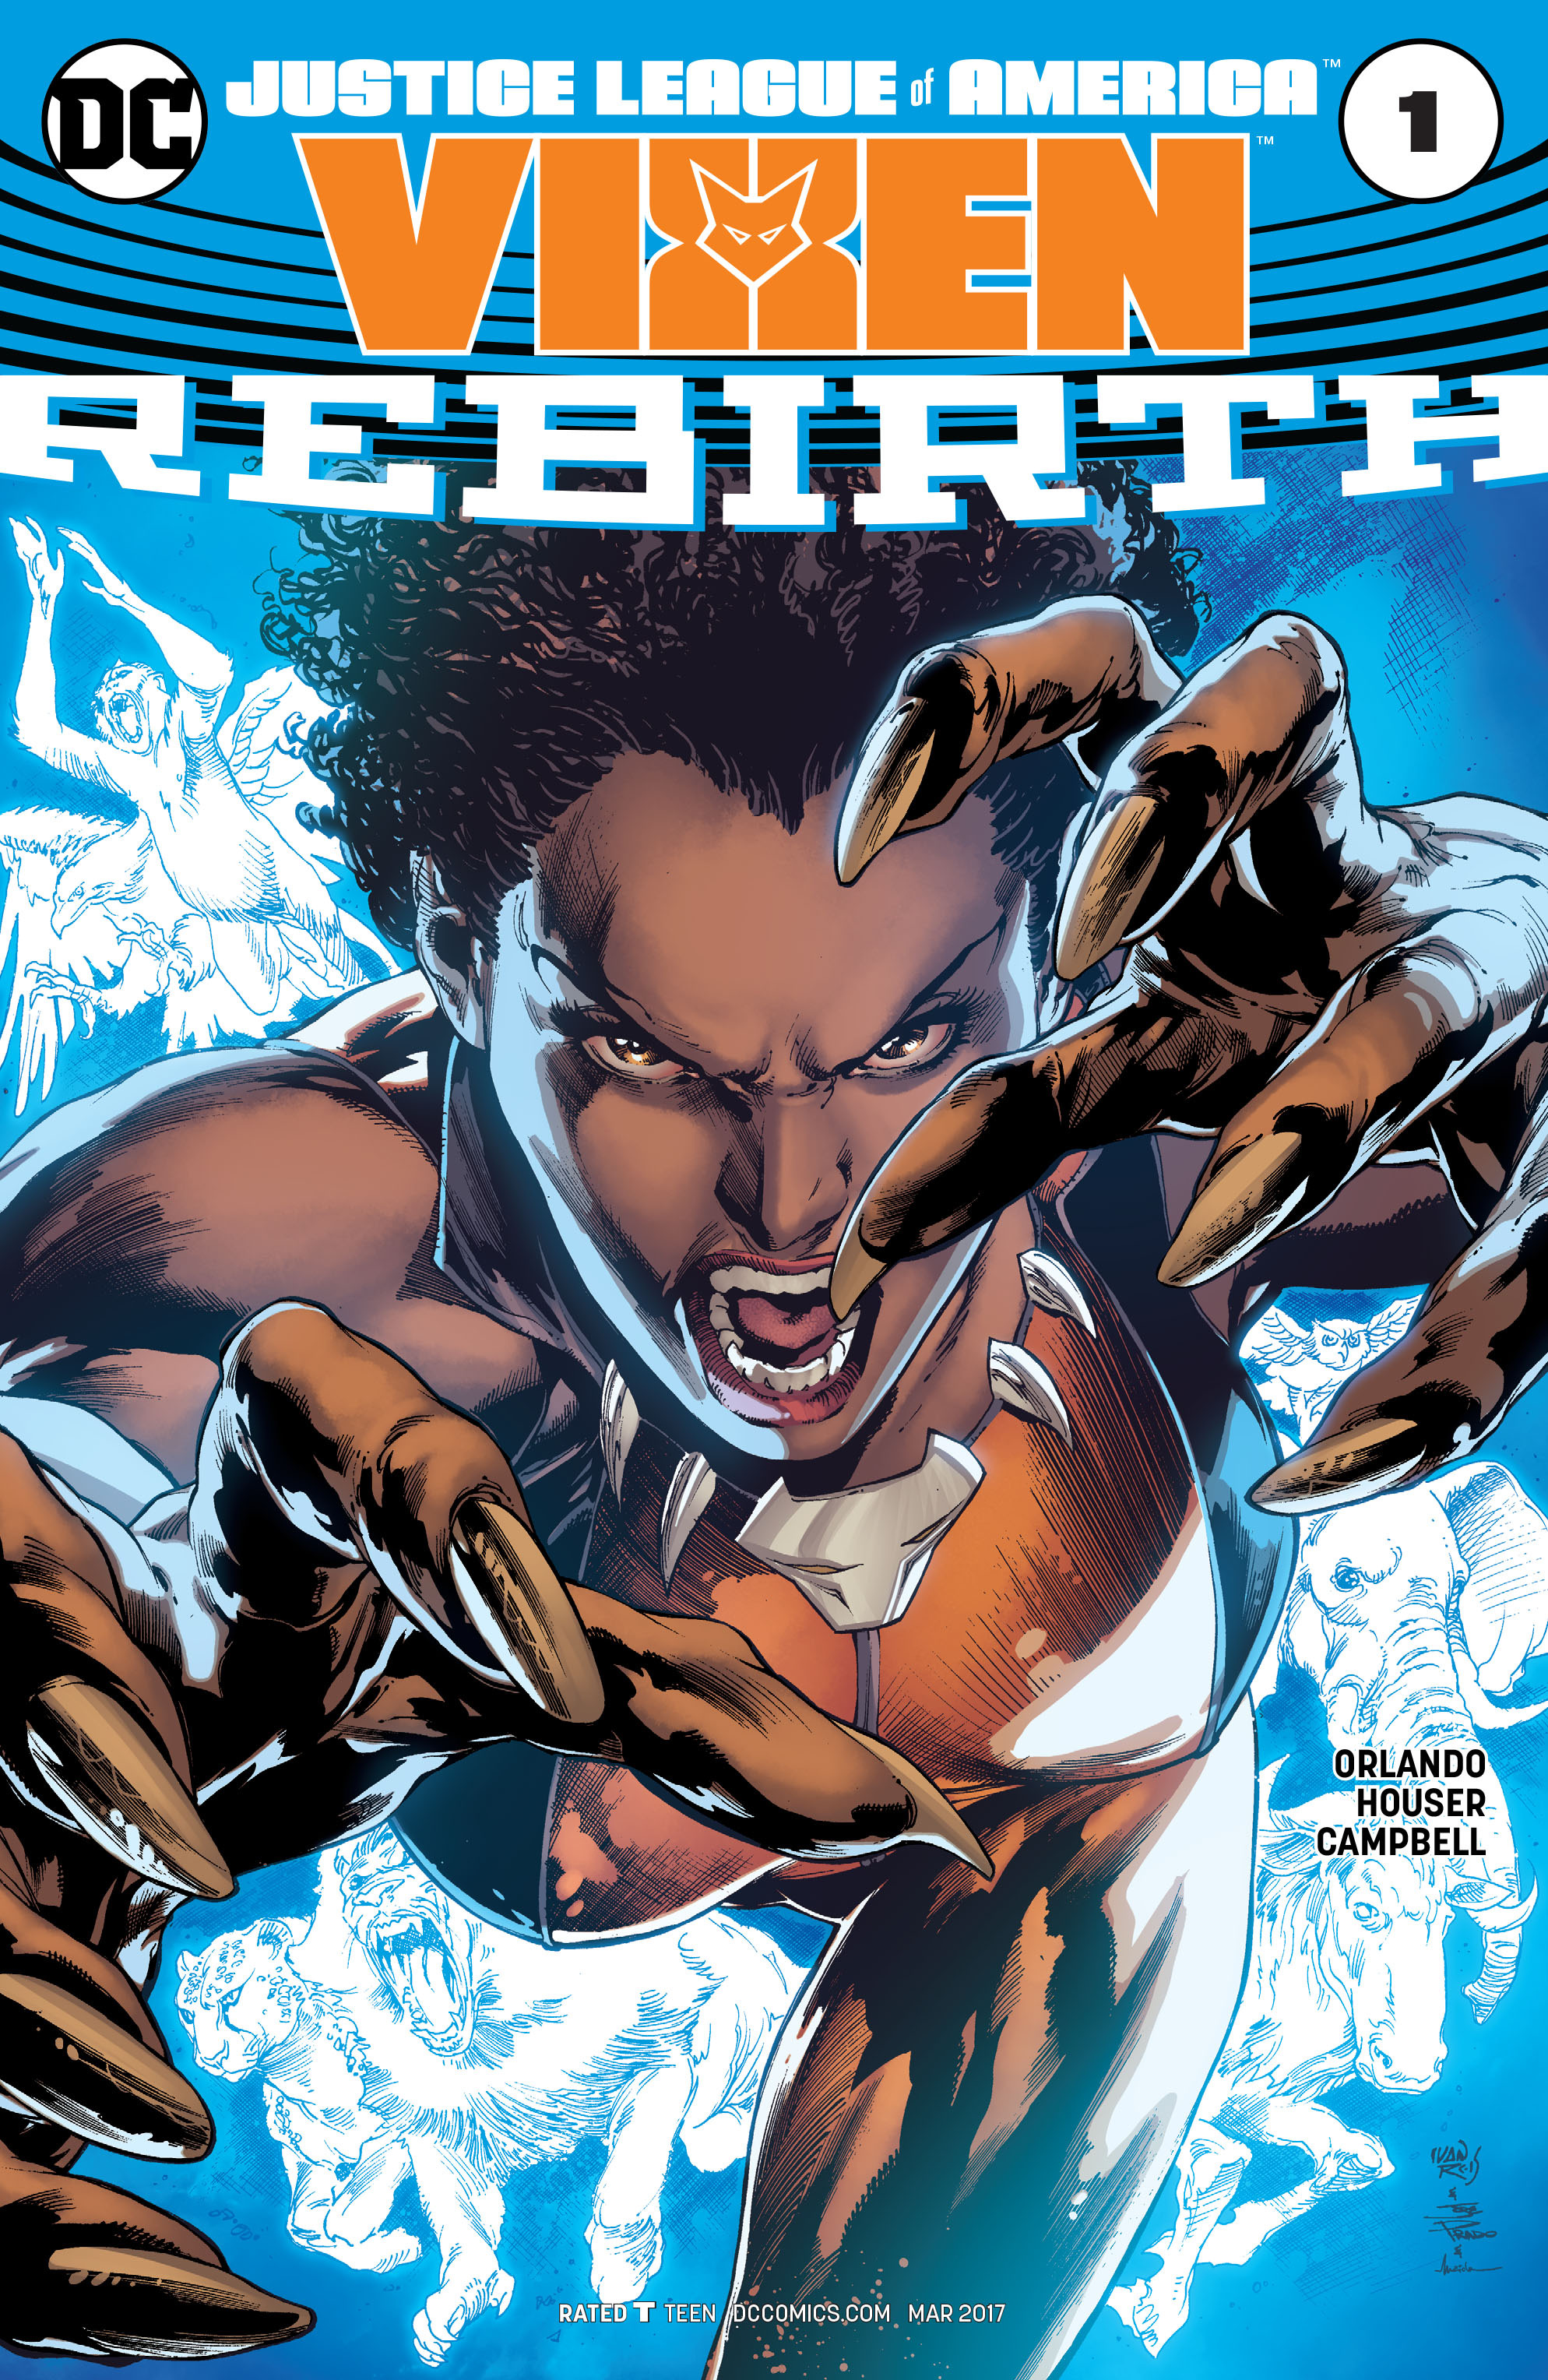 Justice League of America: Vixen Rebirth Vol 1 1